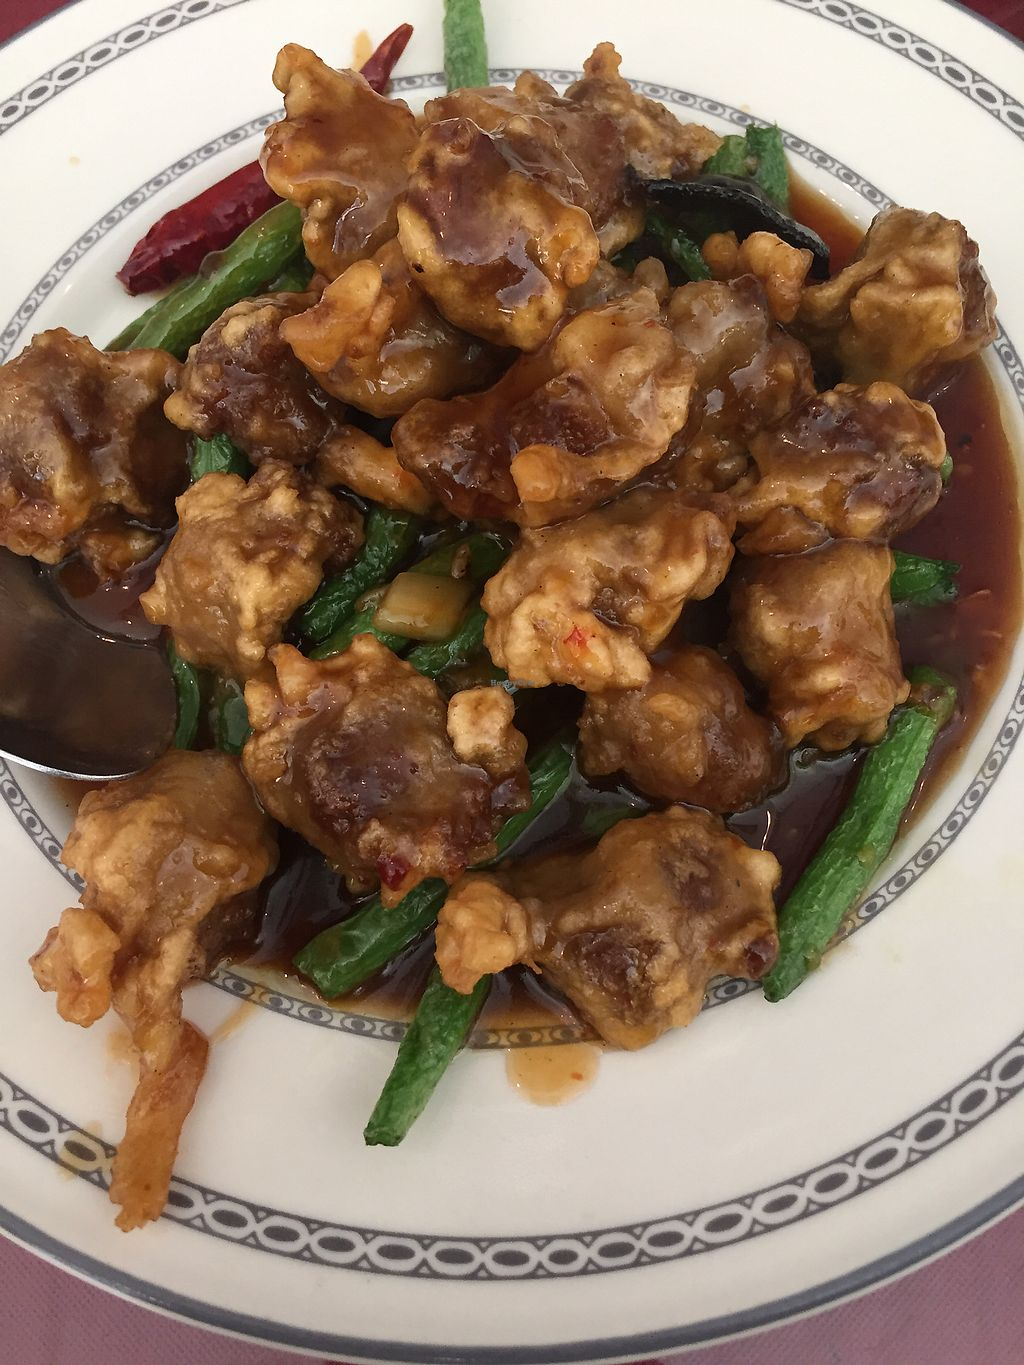 """Photo of Vegi Wokery  by <a href=""""/members/profile/R-MV"""">R-MV</a> <br/>Orange chicken  <br/> October 4, 2017  - <a href='/contact/abuse/image/1612/311814'>Report</a>"""